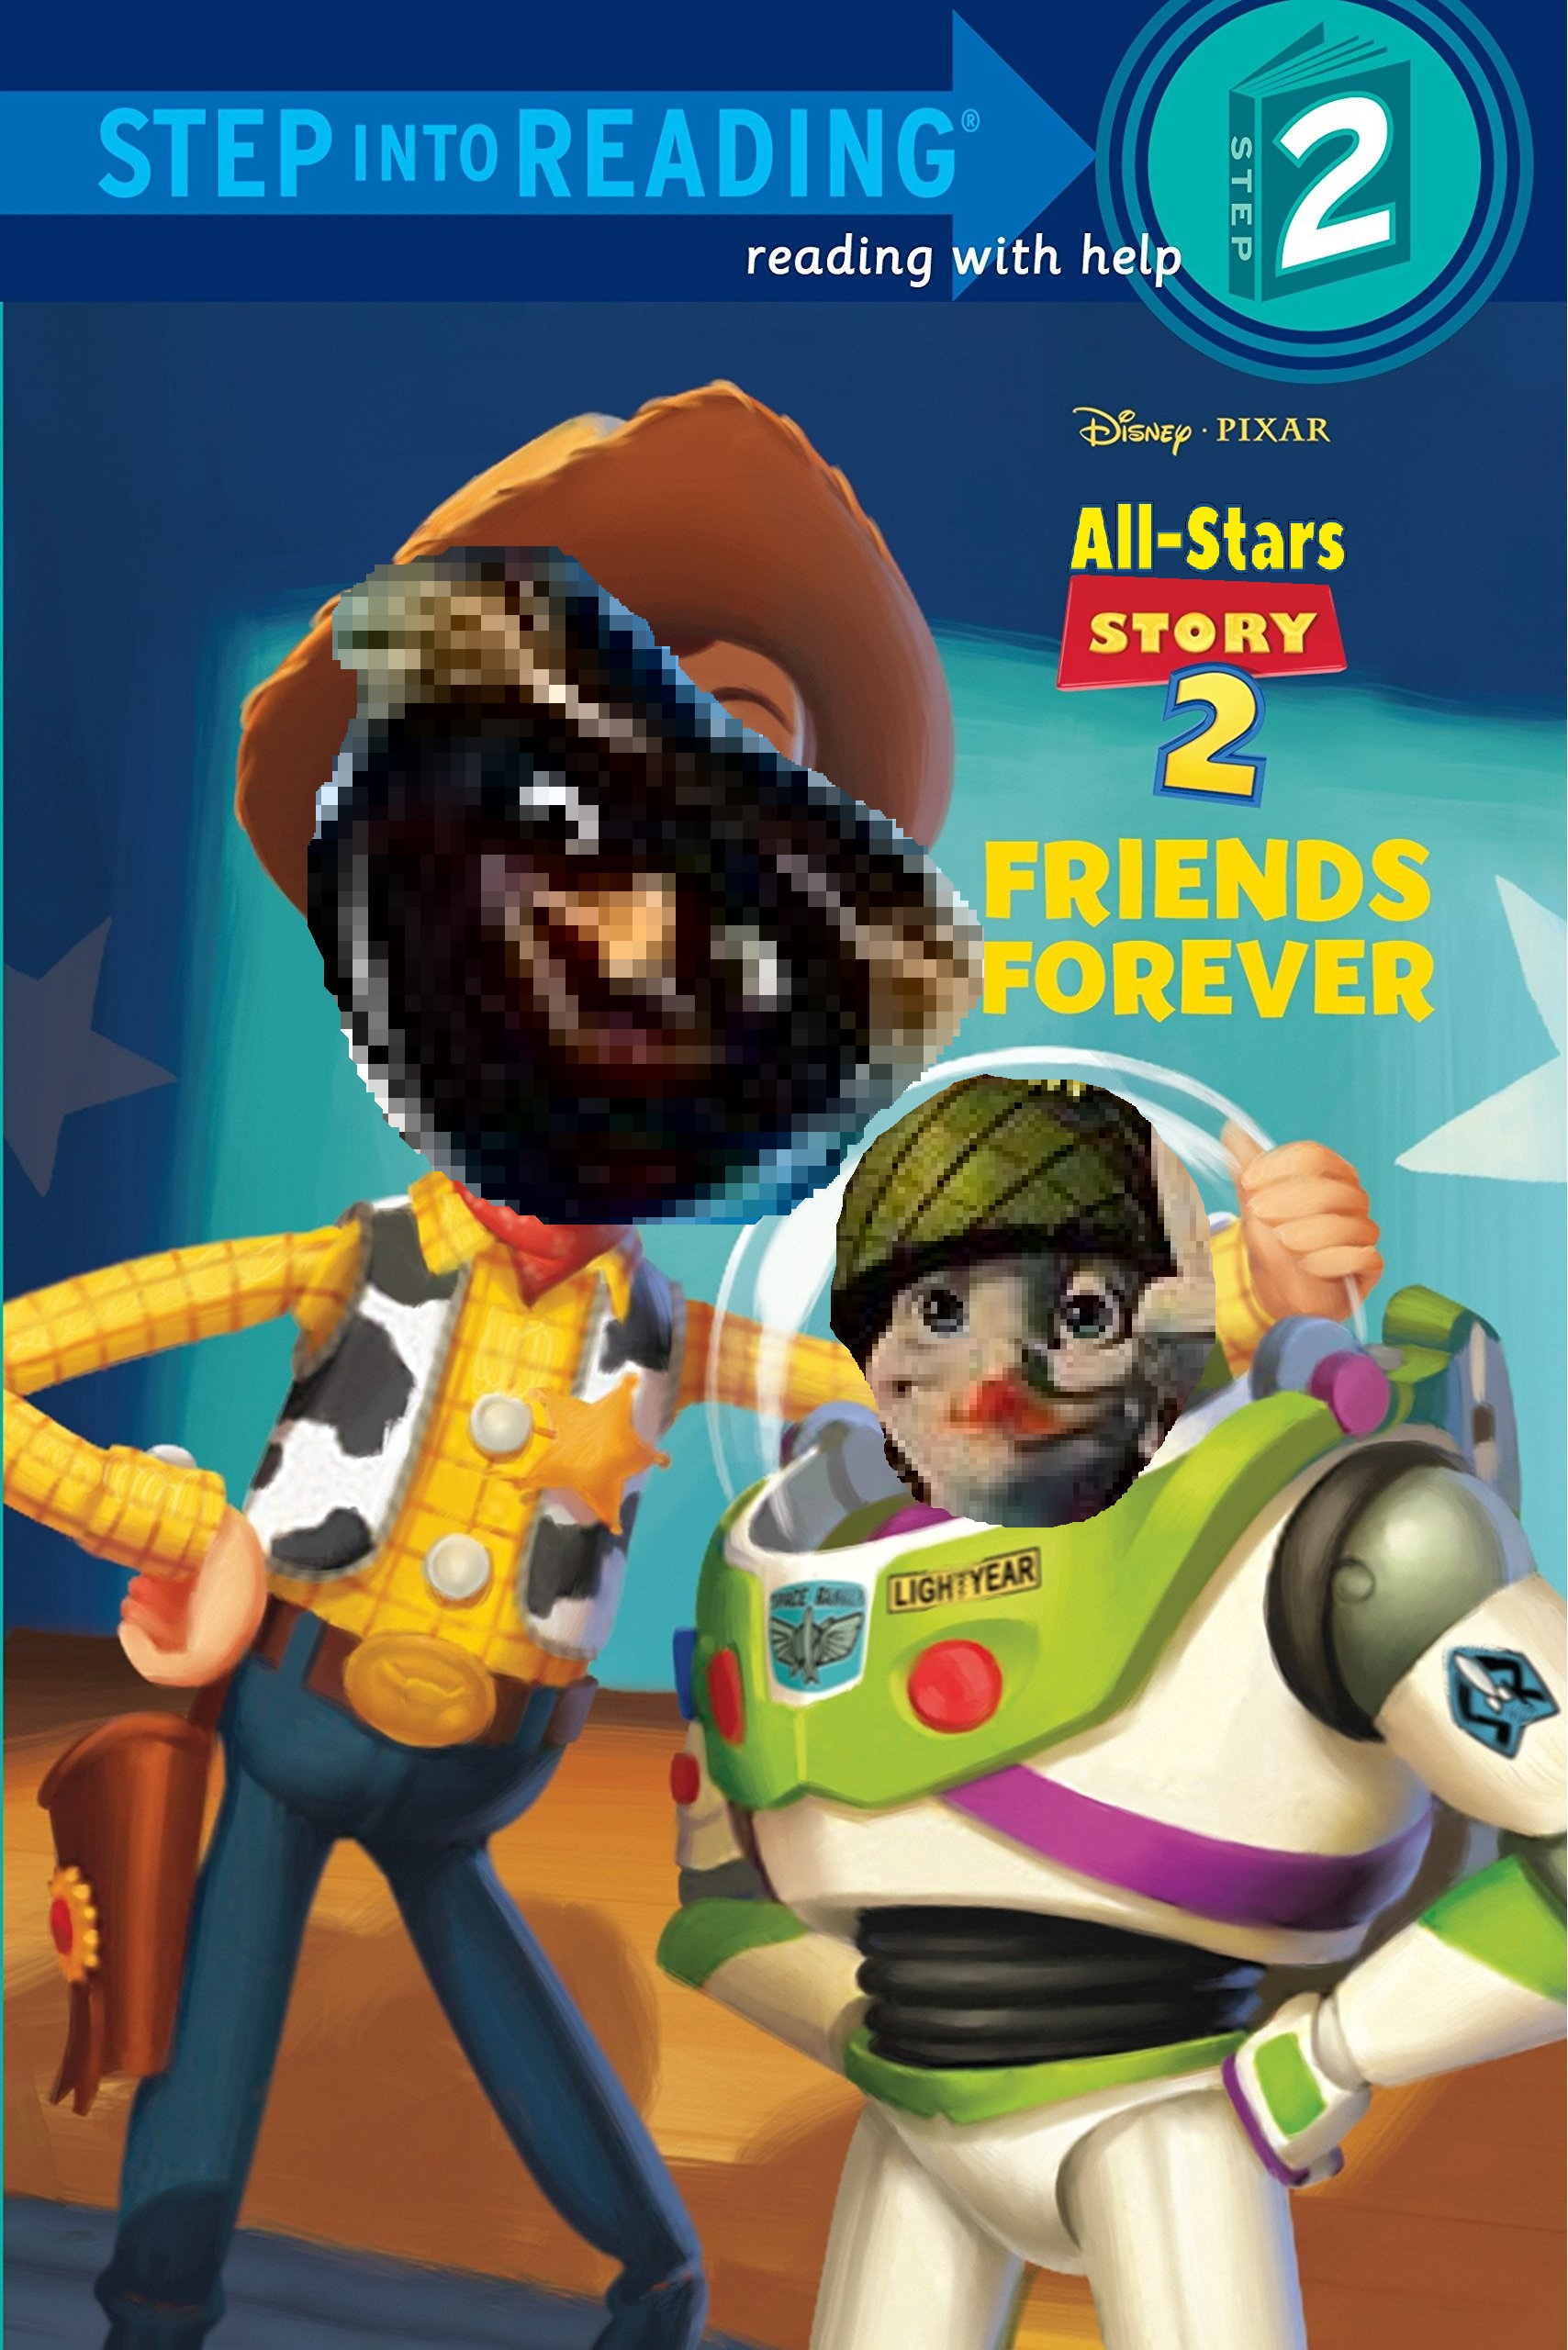 All-Stars Story 2: Friends Forever